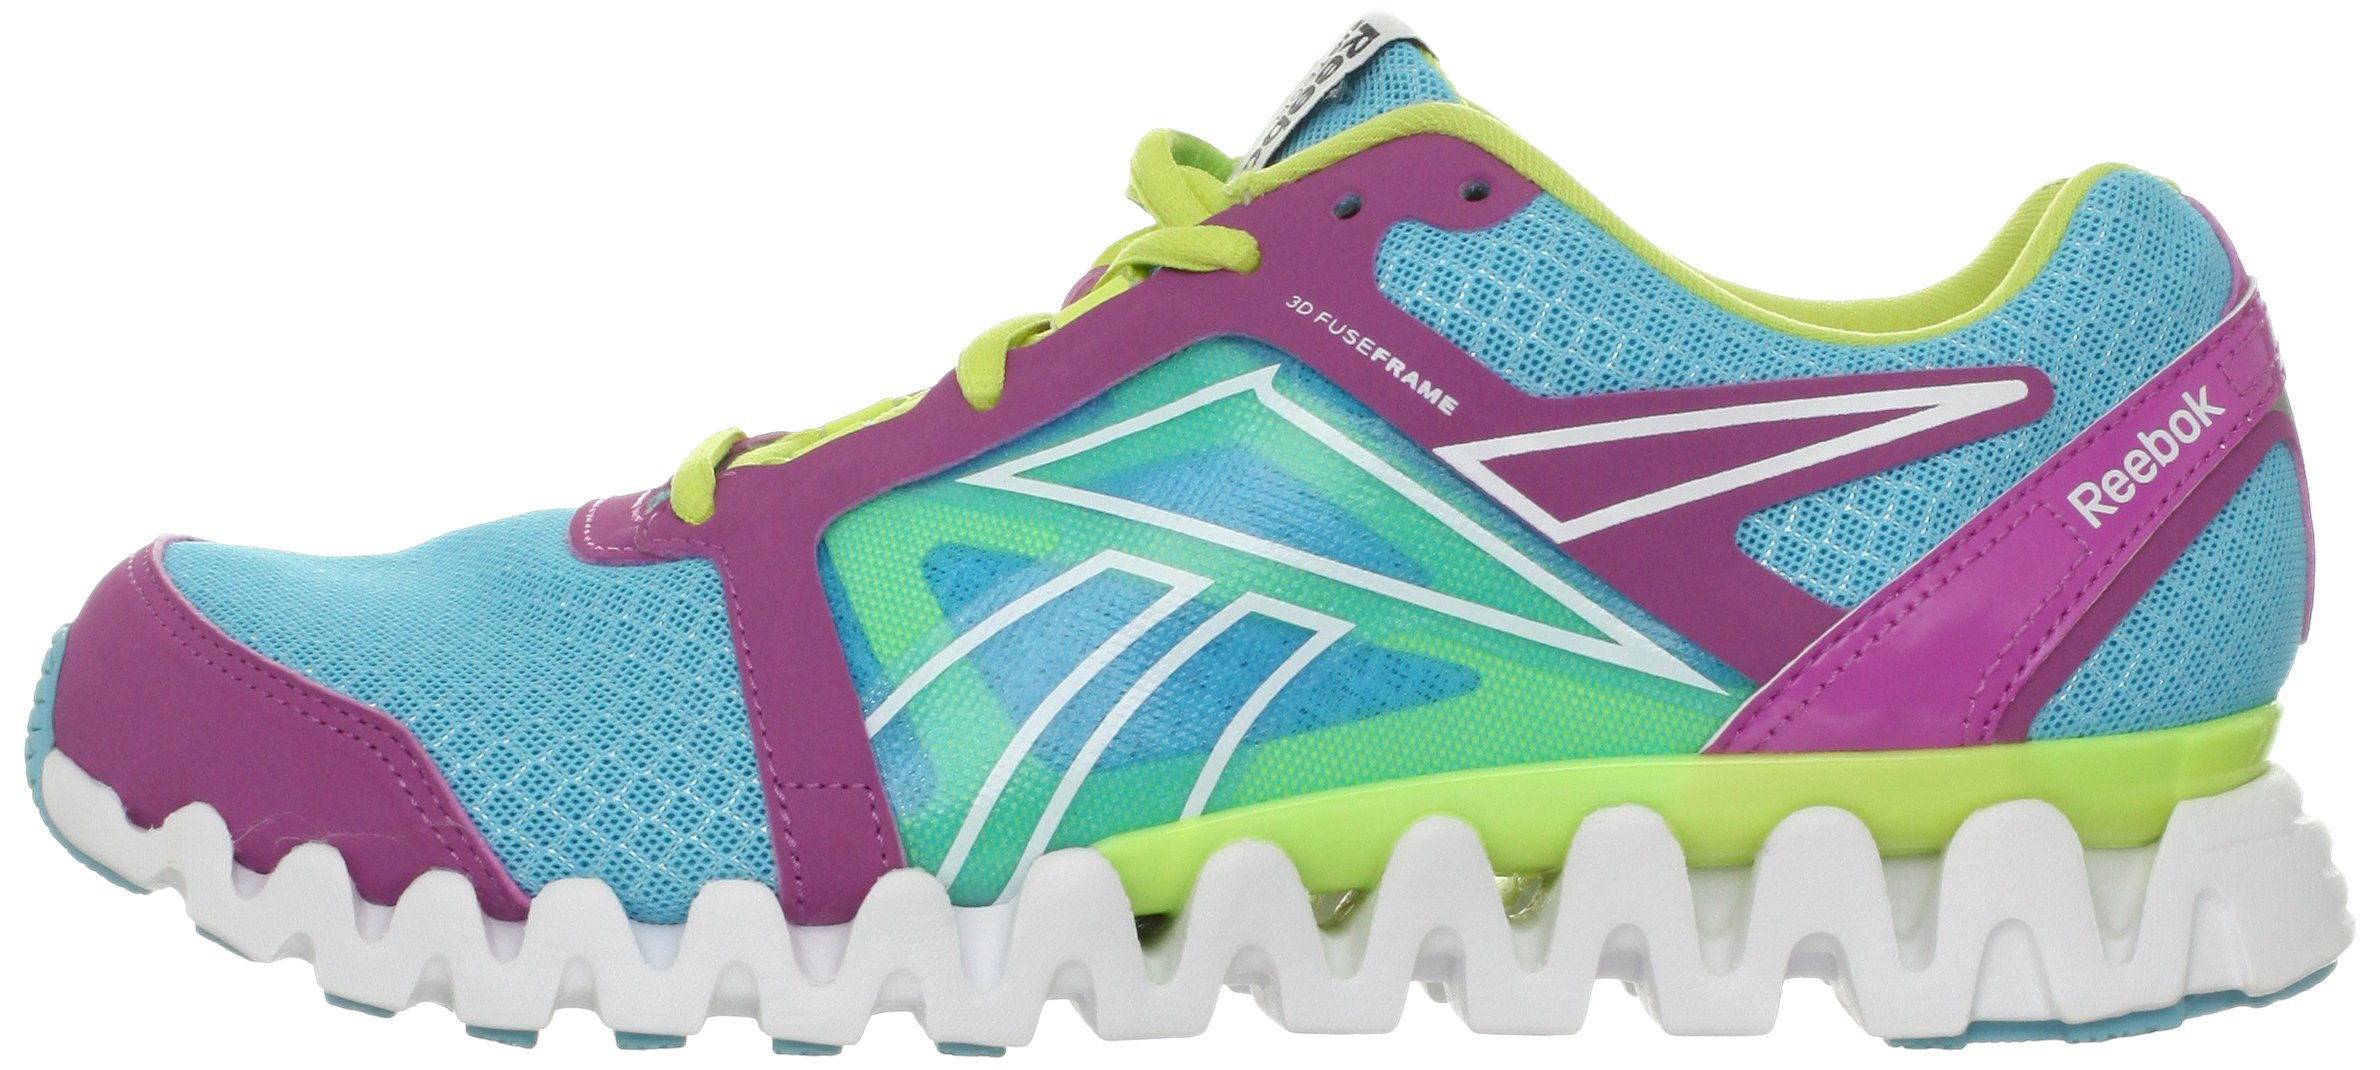 Reebok Women's Zigquick Fire Cross-Training Shoe,Watery Blue/Cool Aloe/Iced Berry/White,10 M US by Reebok (Image #5)